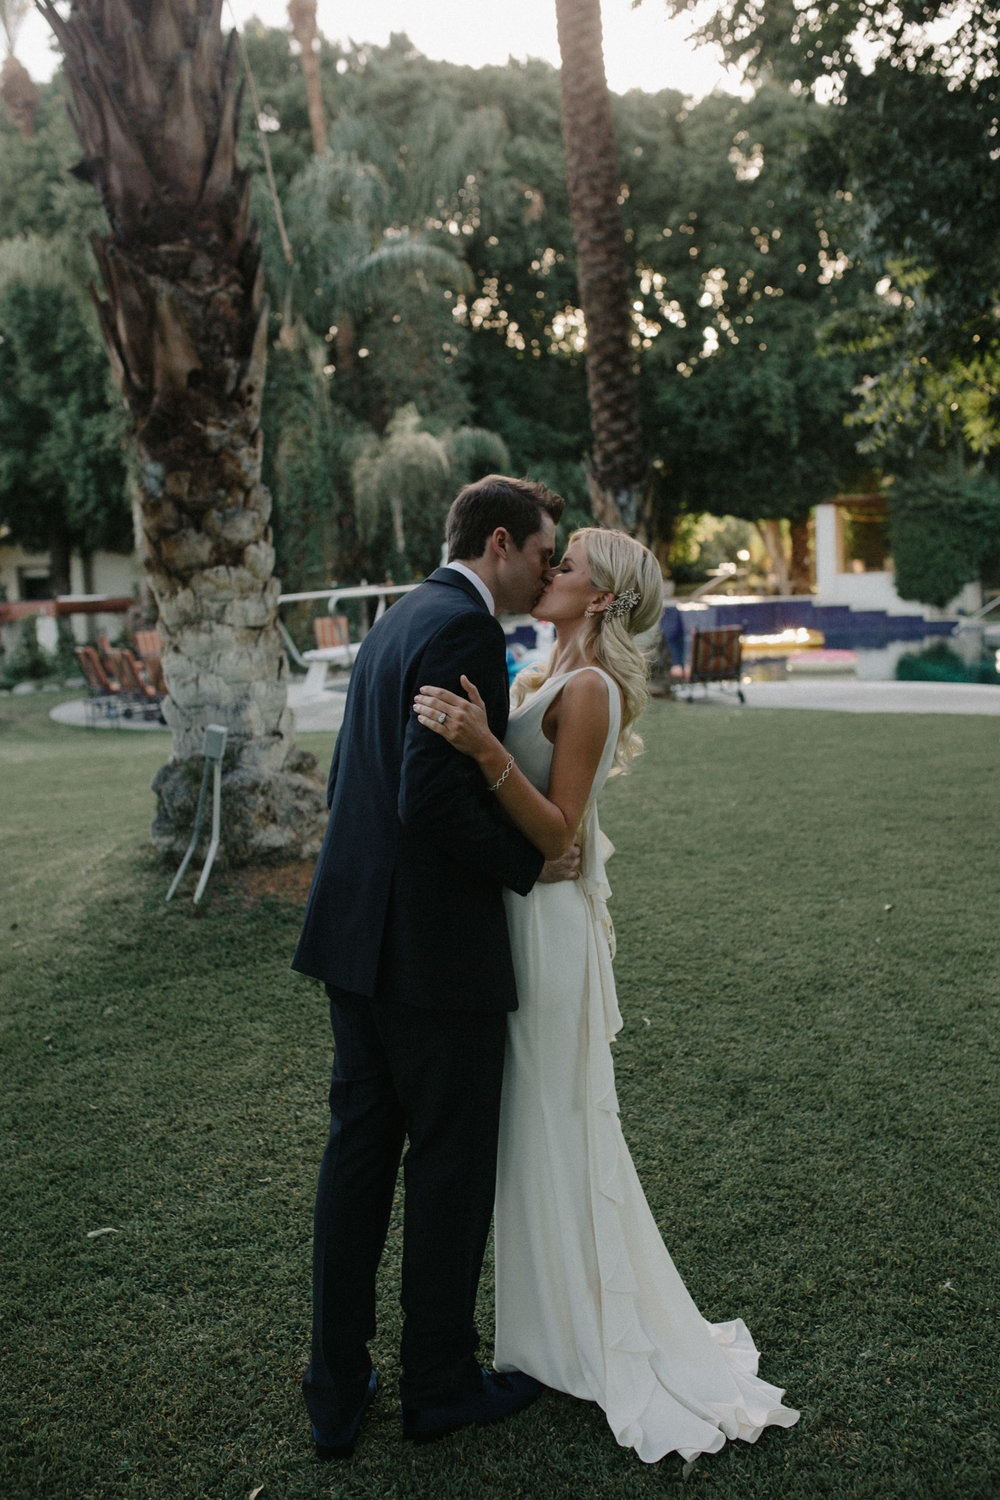 Palm_Springs_CA_wedding_alex_maxwell-62.jpg